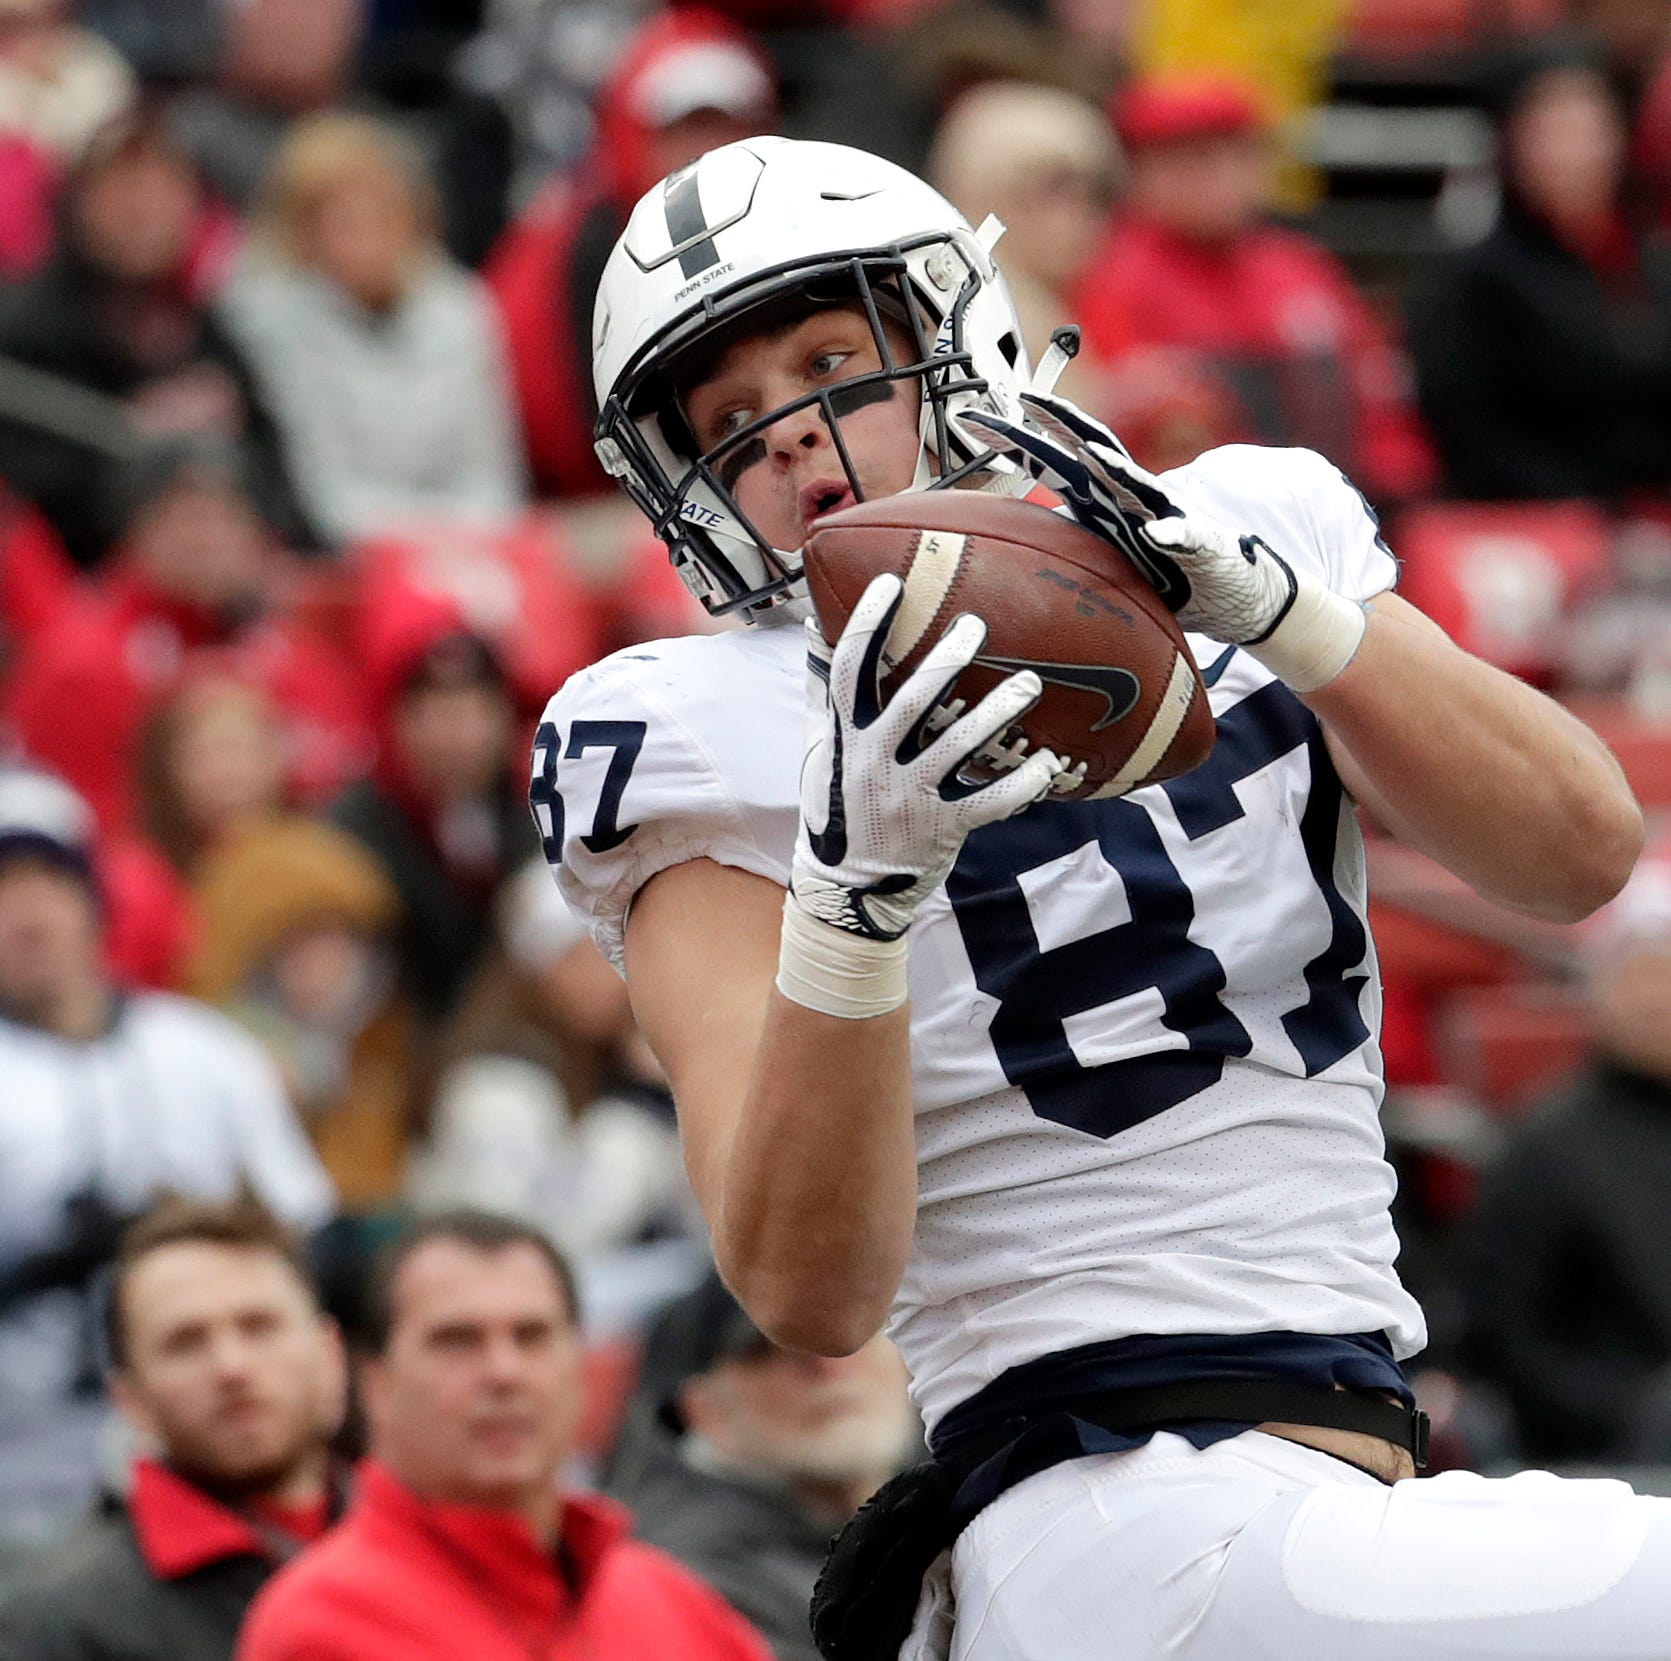 Accept Penn State for what it is: An ugly winner with prettier days to come